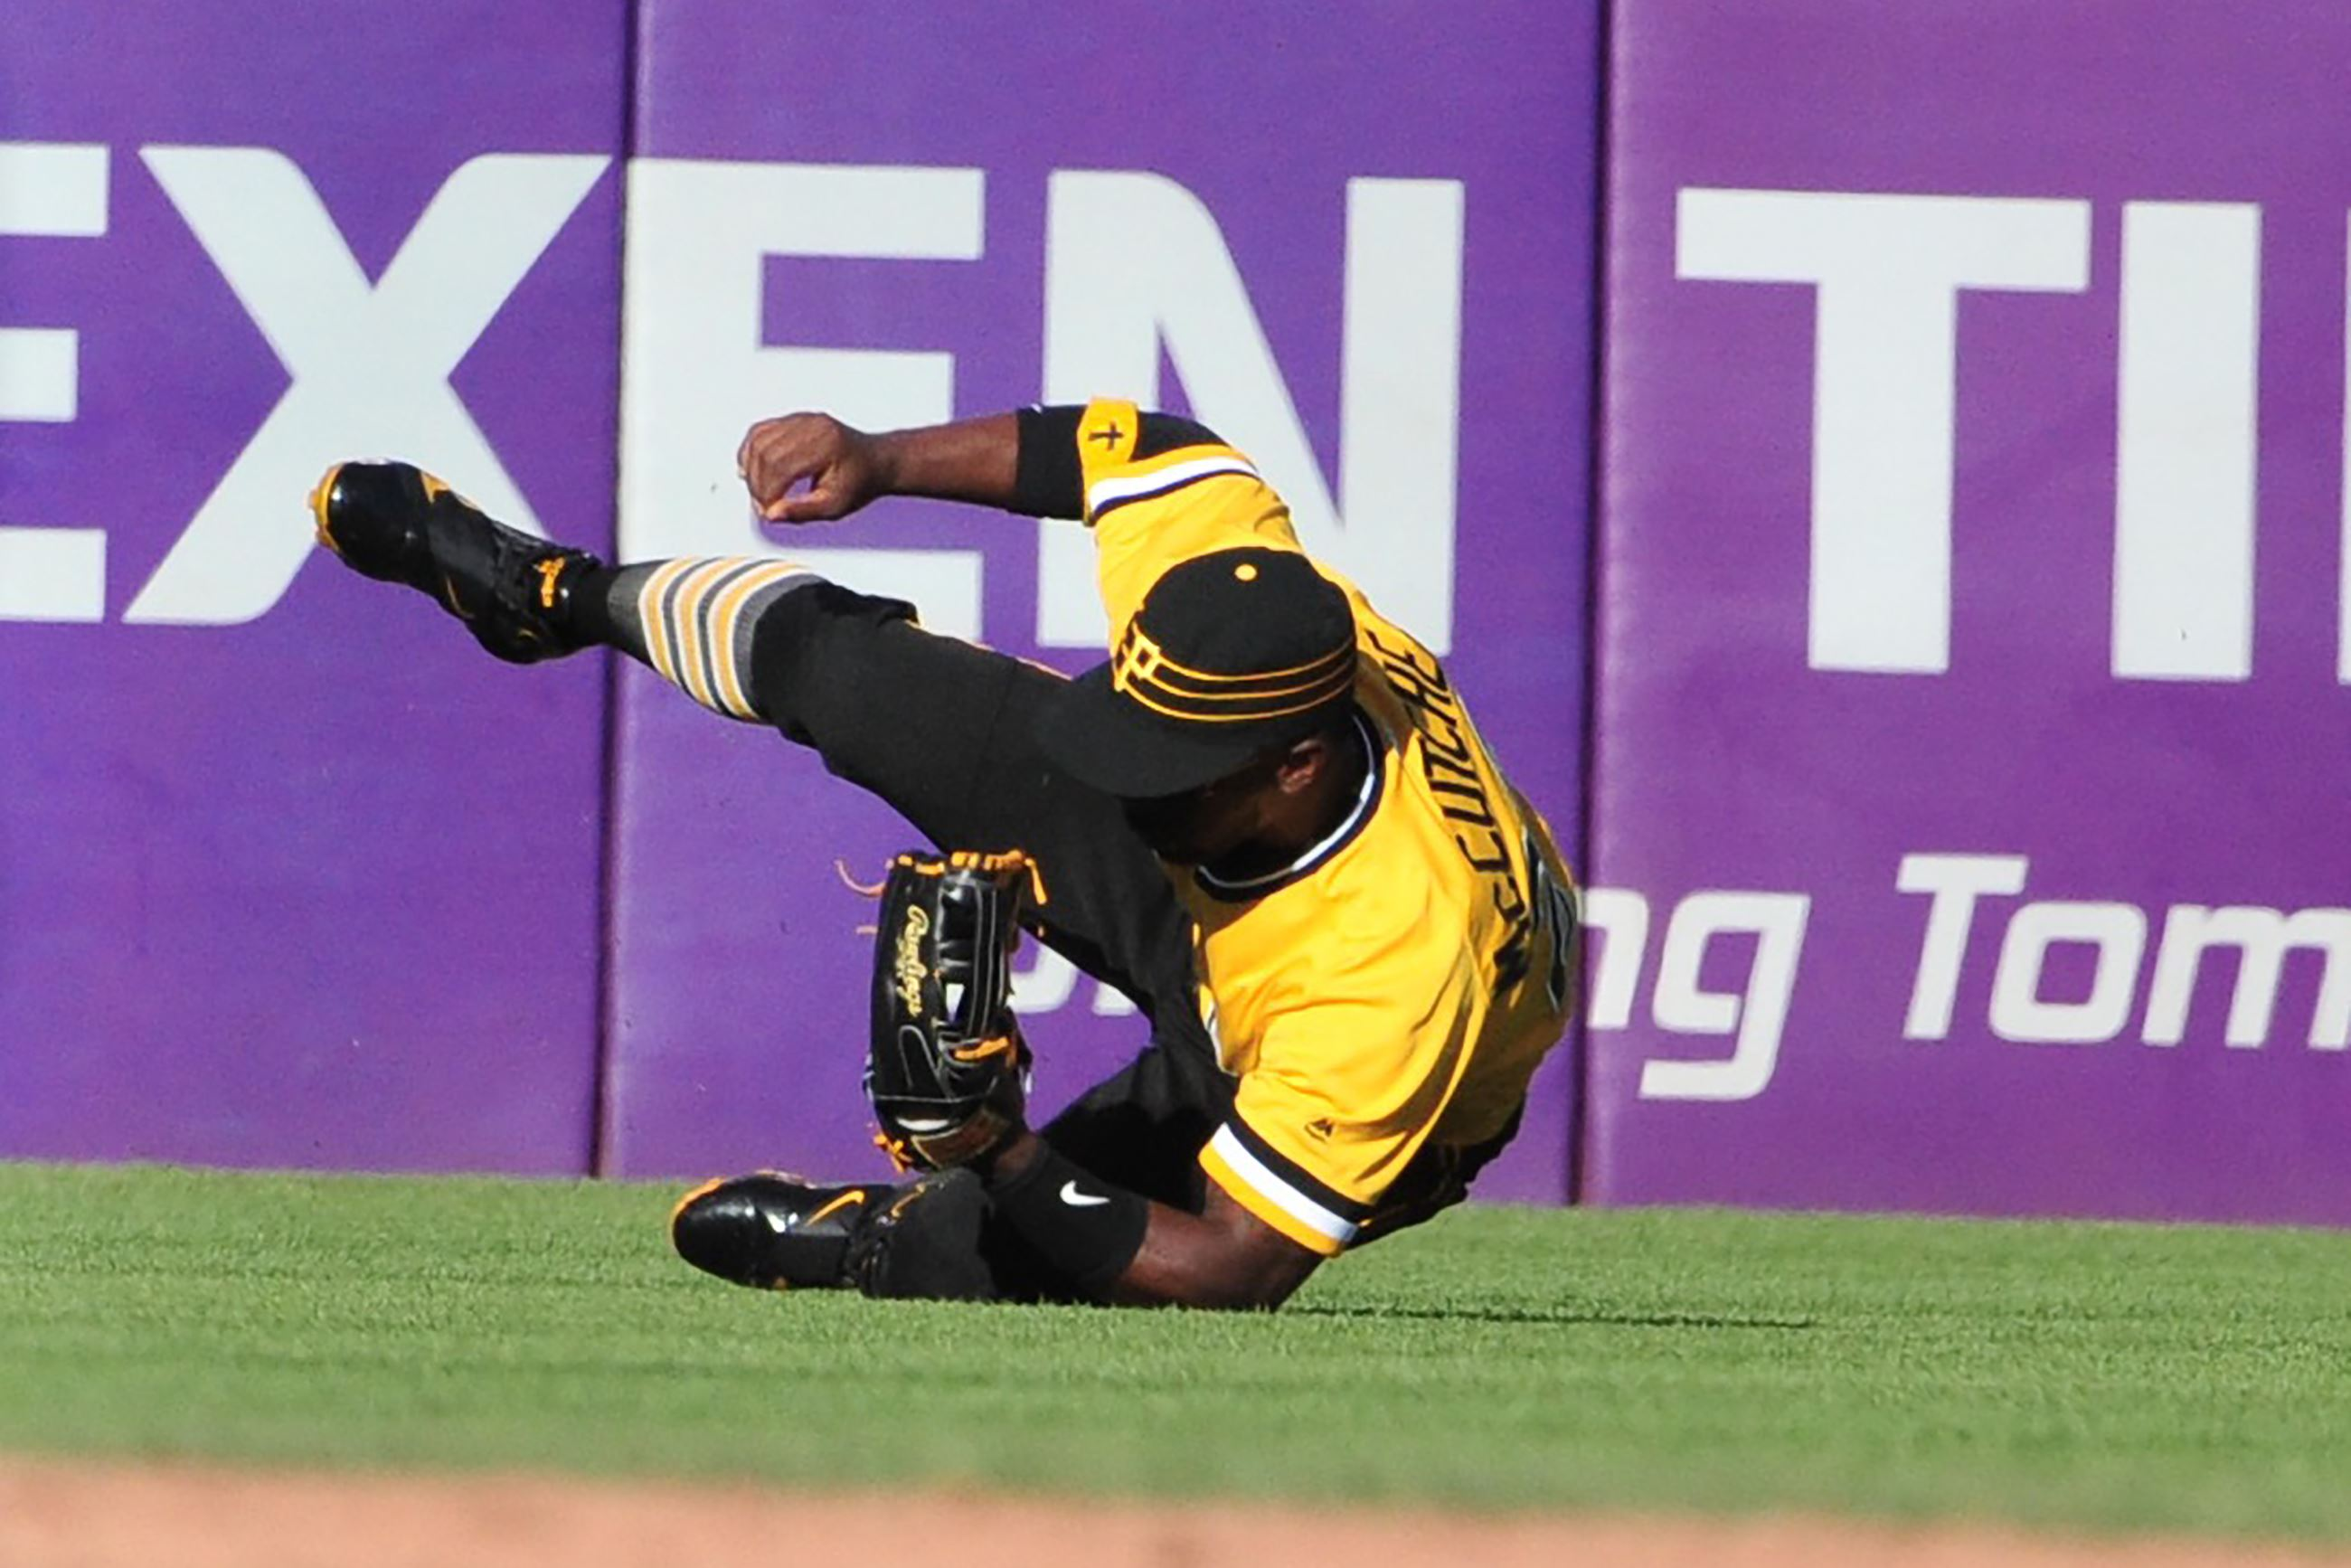 Taillon dominates, Pirates top Mets 4-0 to stop 5-game skid